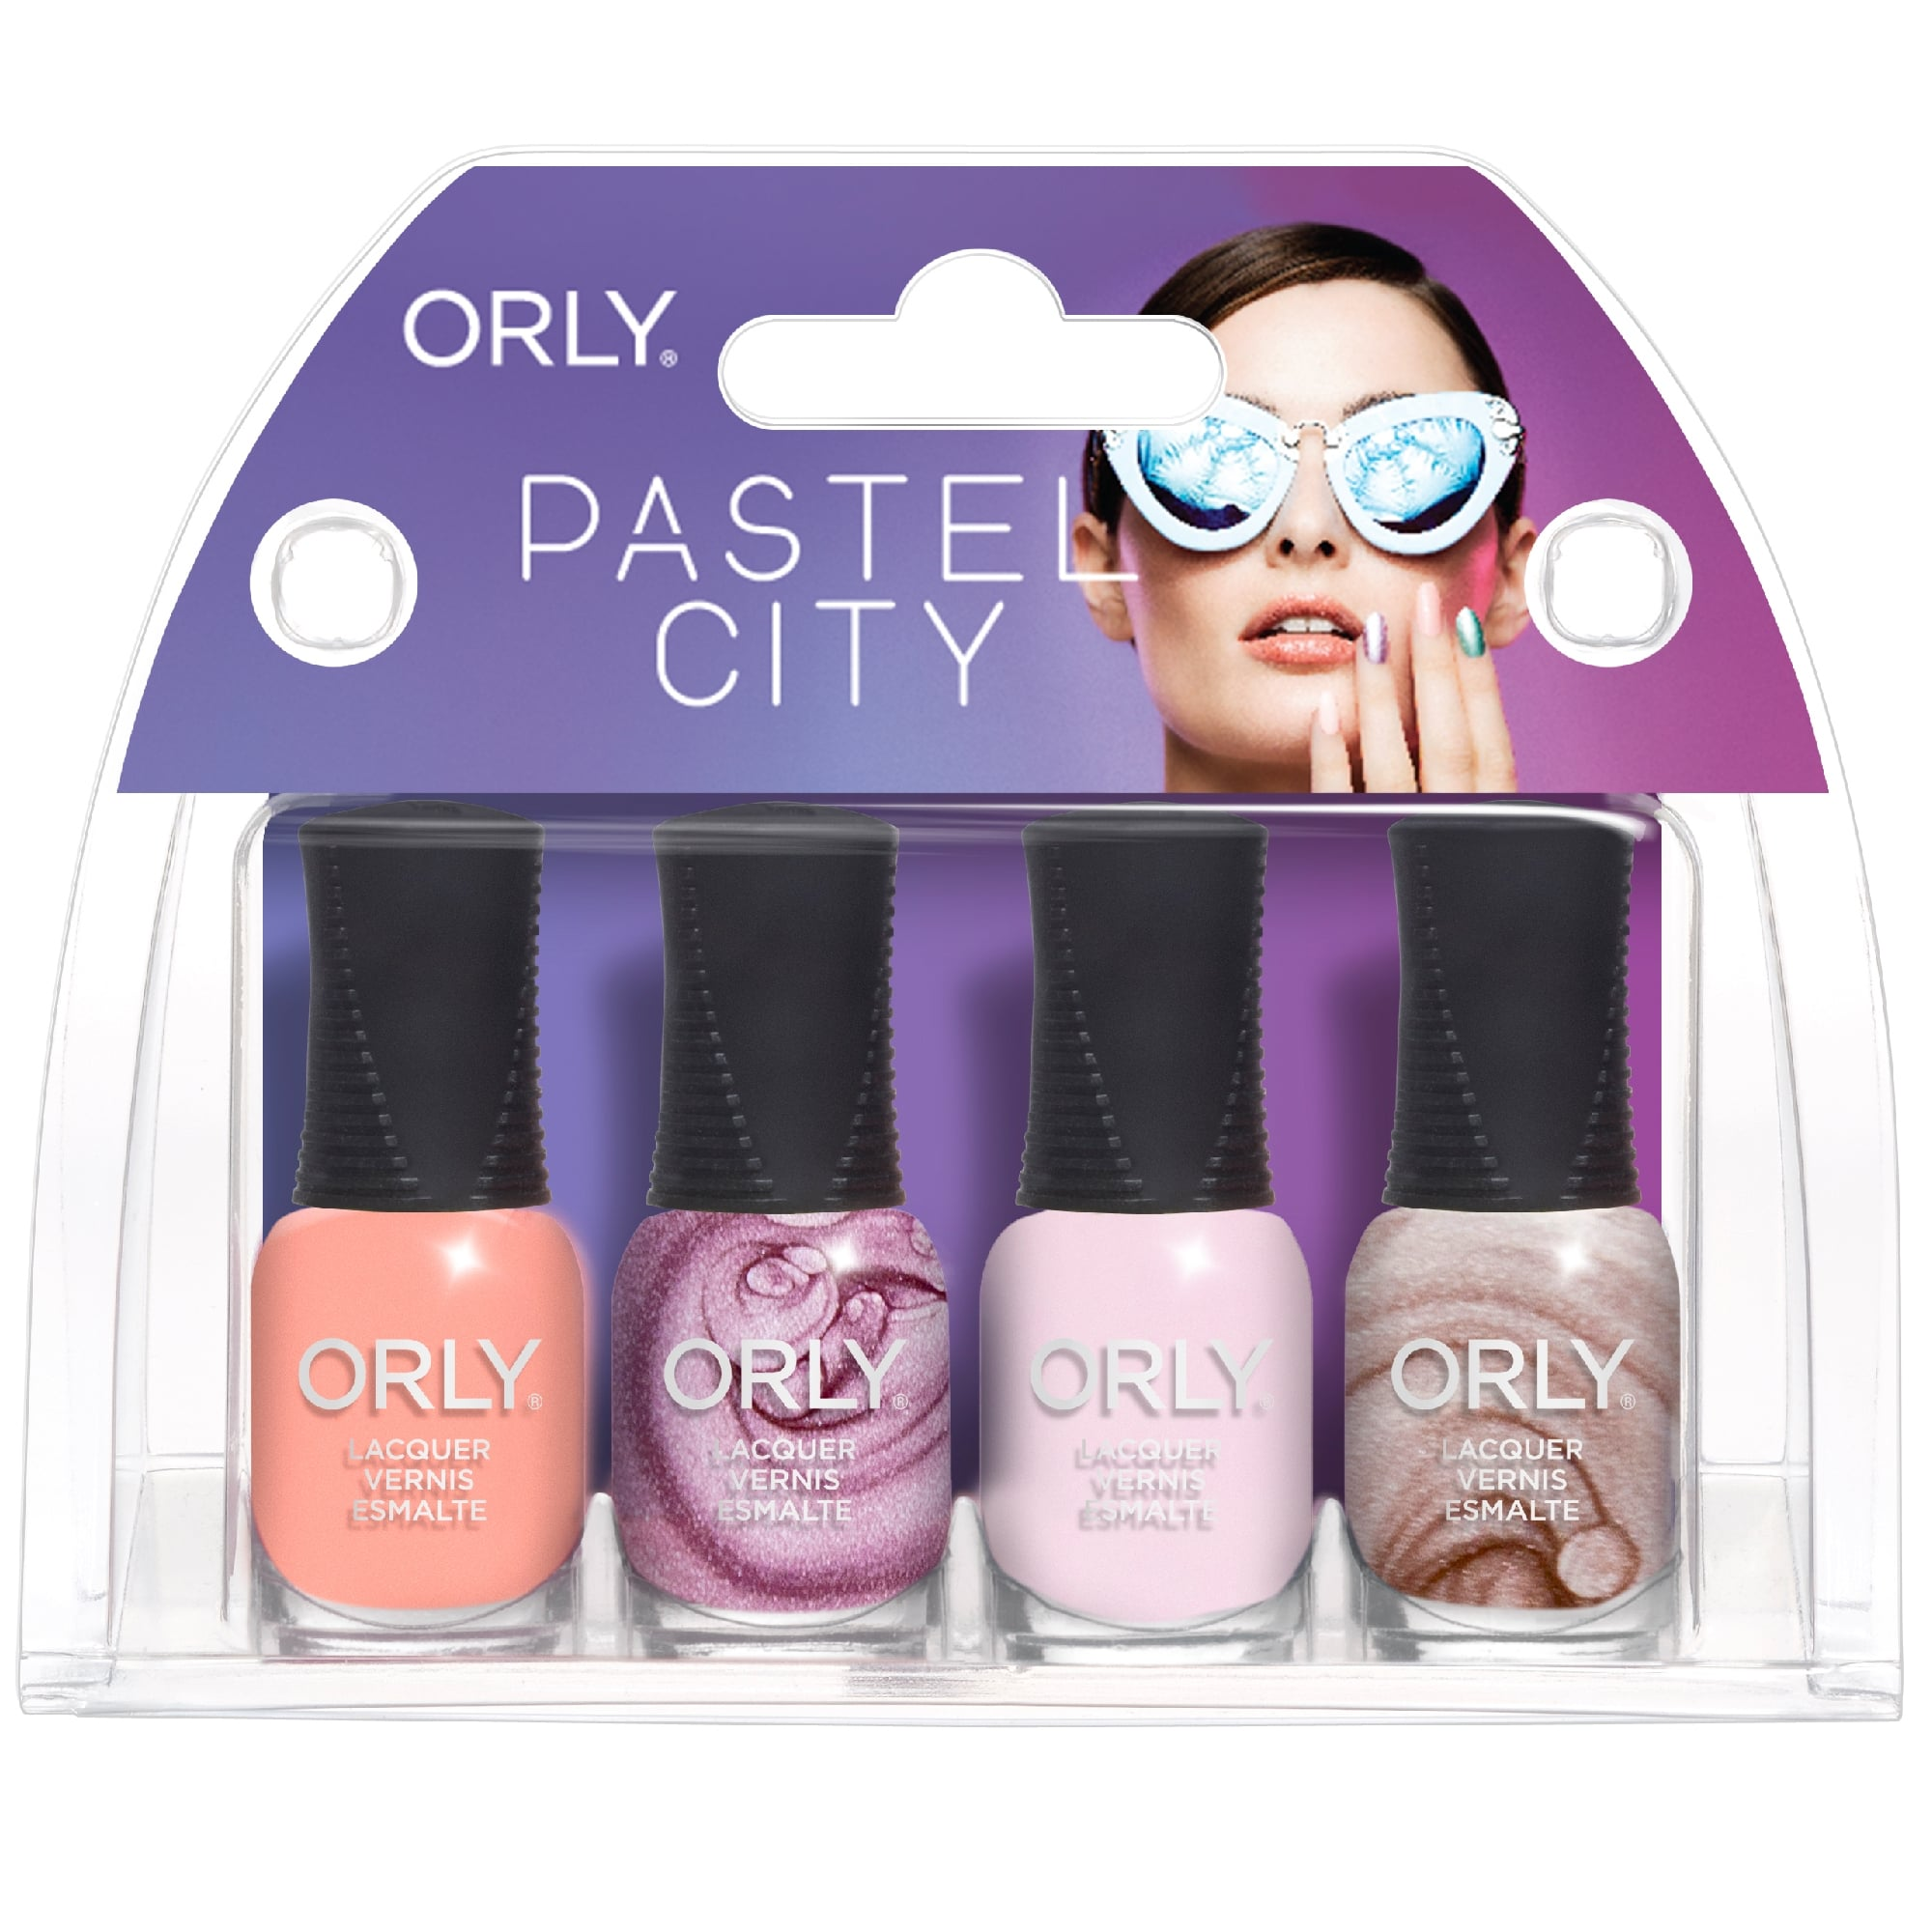 Orly Pastel City Nail Polish Collection - 4 Piece Mini Set (OB195)